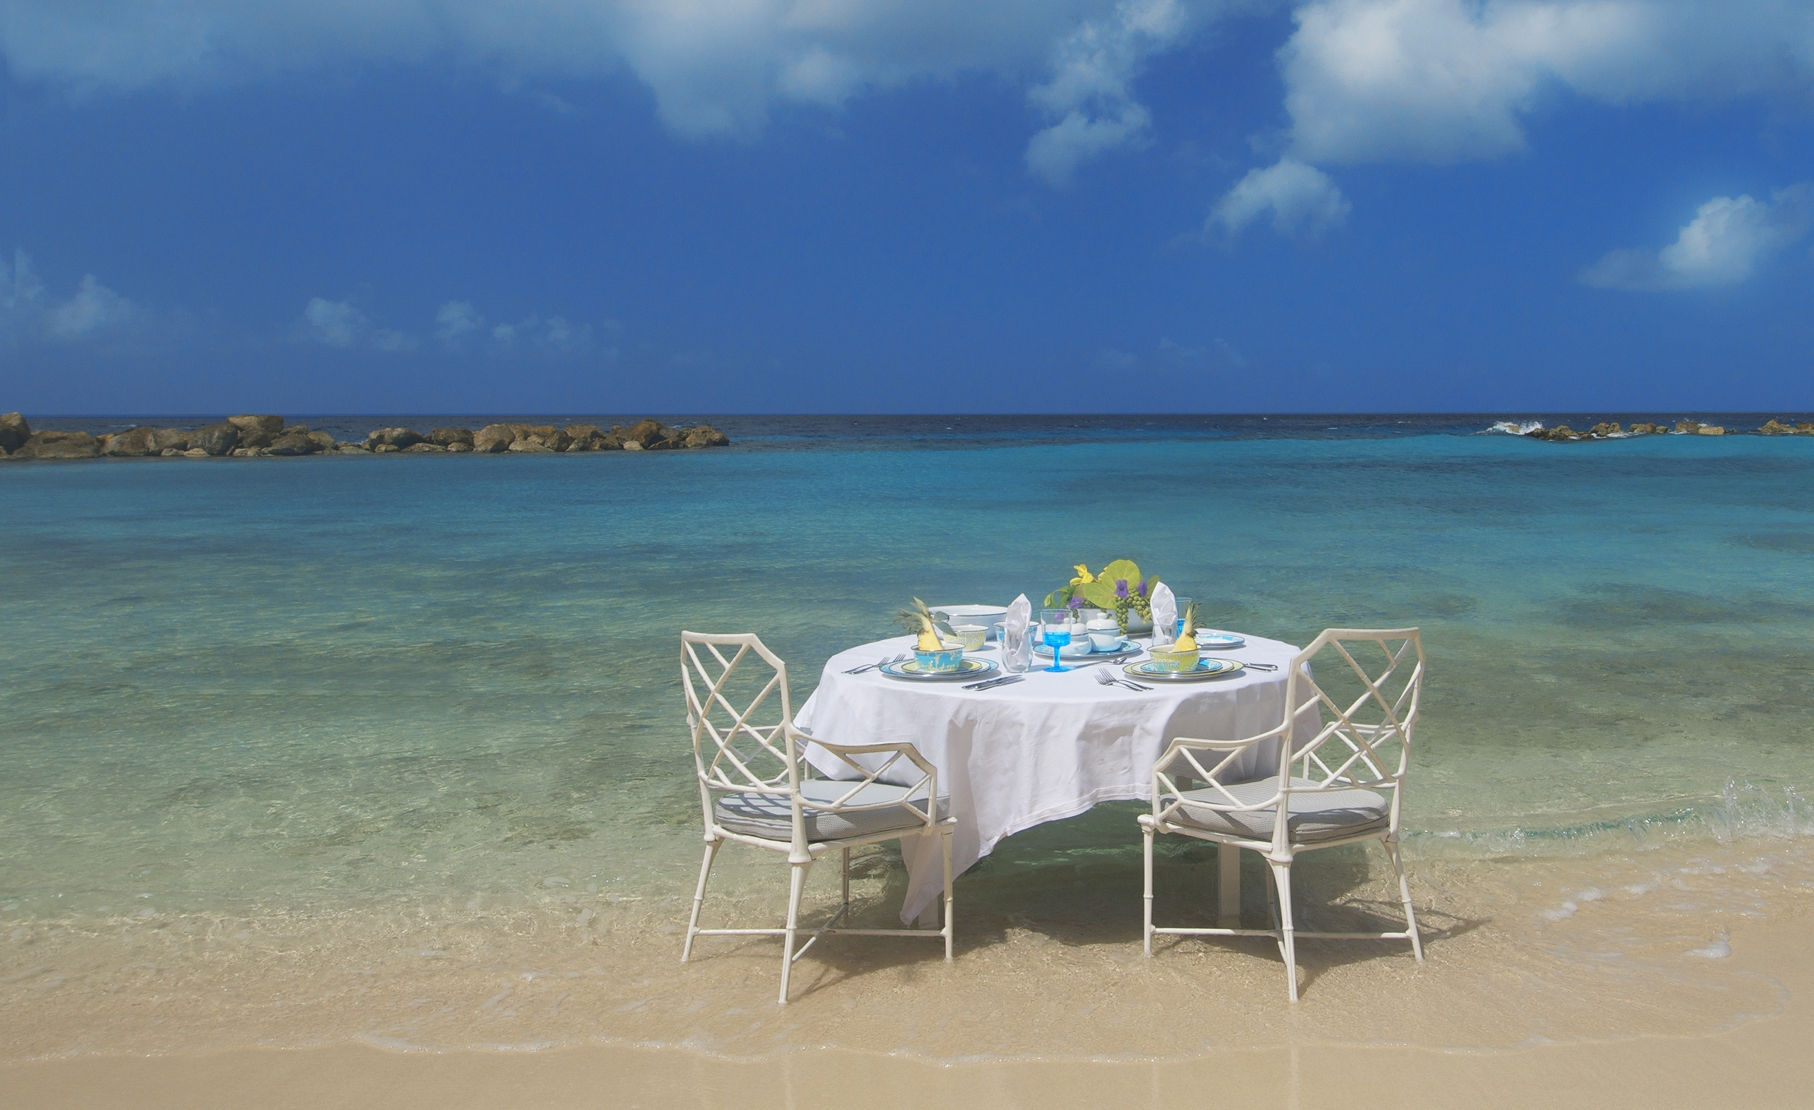 diner-op-het-strand-(background-1).jpg